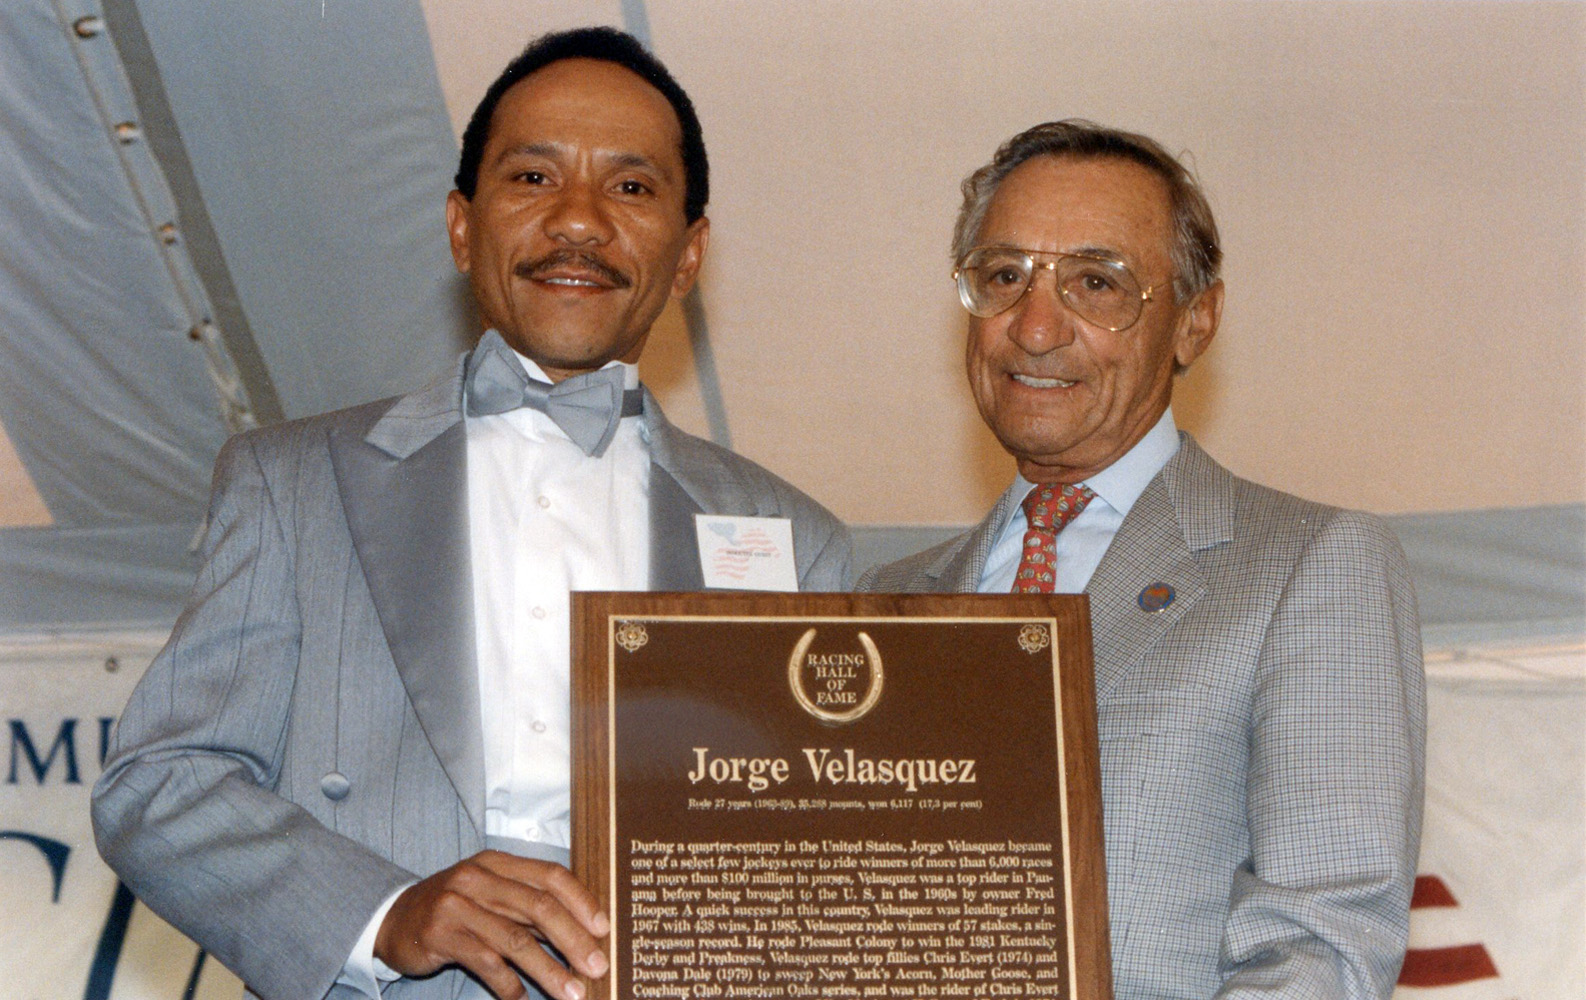 Jorge Velasquez at his Hall of Fame induction with fellow Hall of Famer Eddie Arcaro in 1990 (Barbara D. Livingston/Museum Collection)